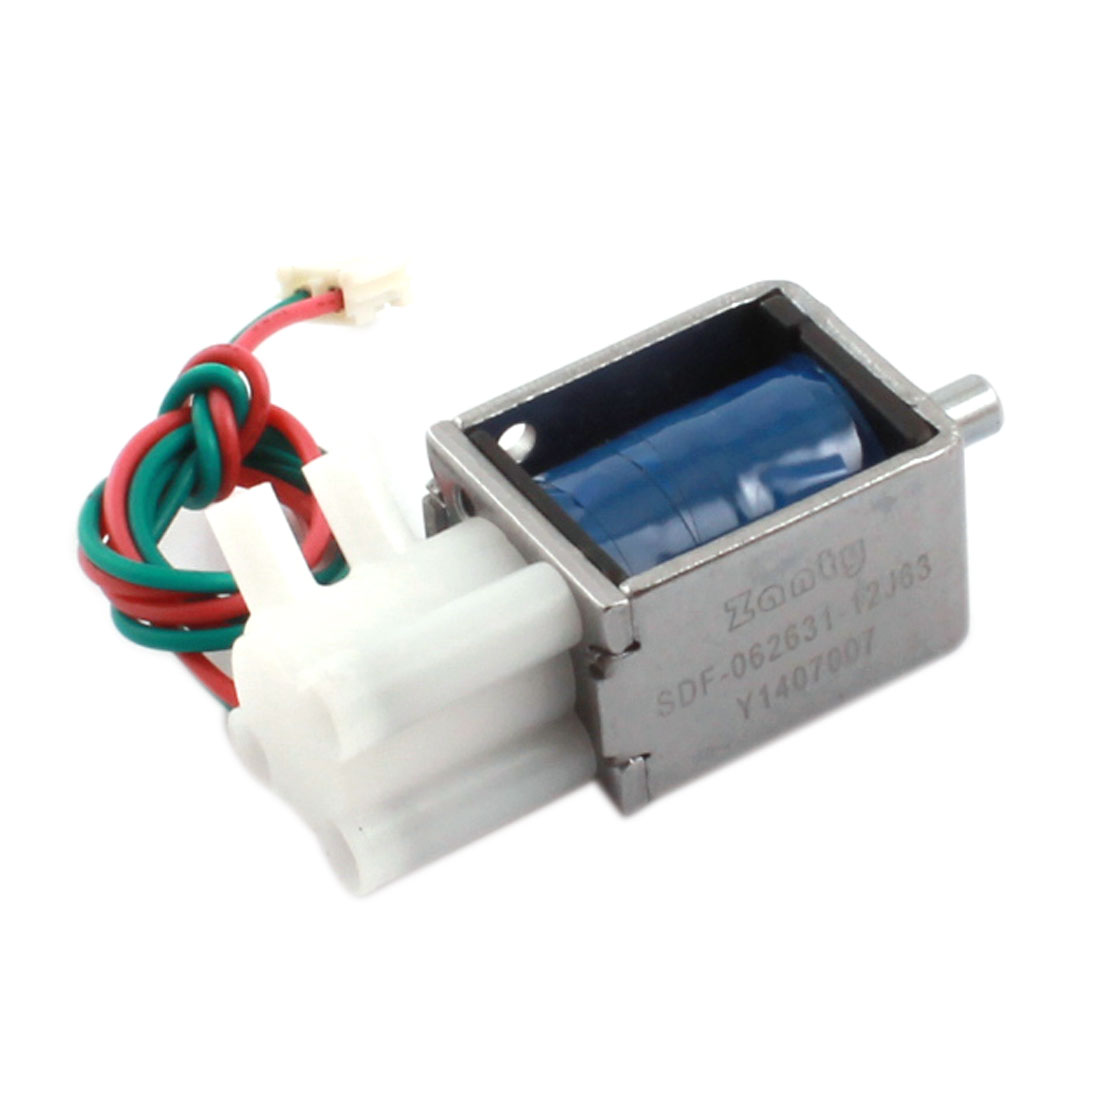 "DC 12V 0.19A 2.28W 10"" Wired Connect Double Outlet Open Frame Gas Water Solenoid Electromagnet Valve"